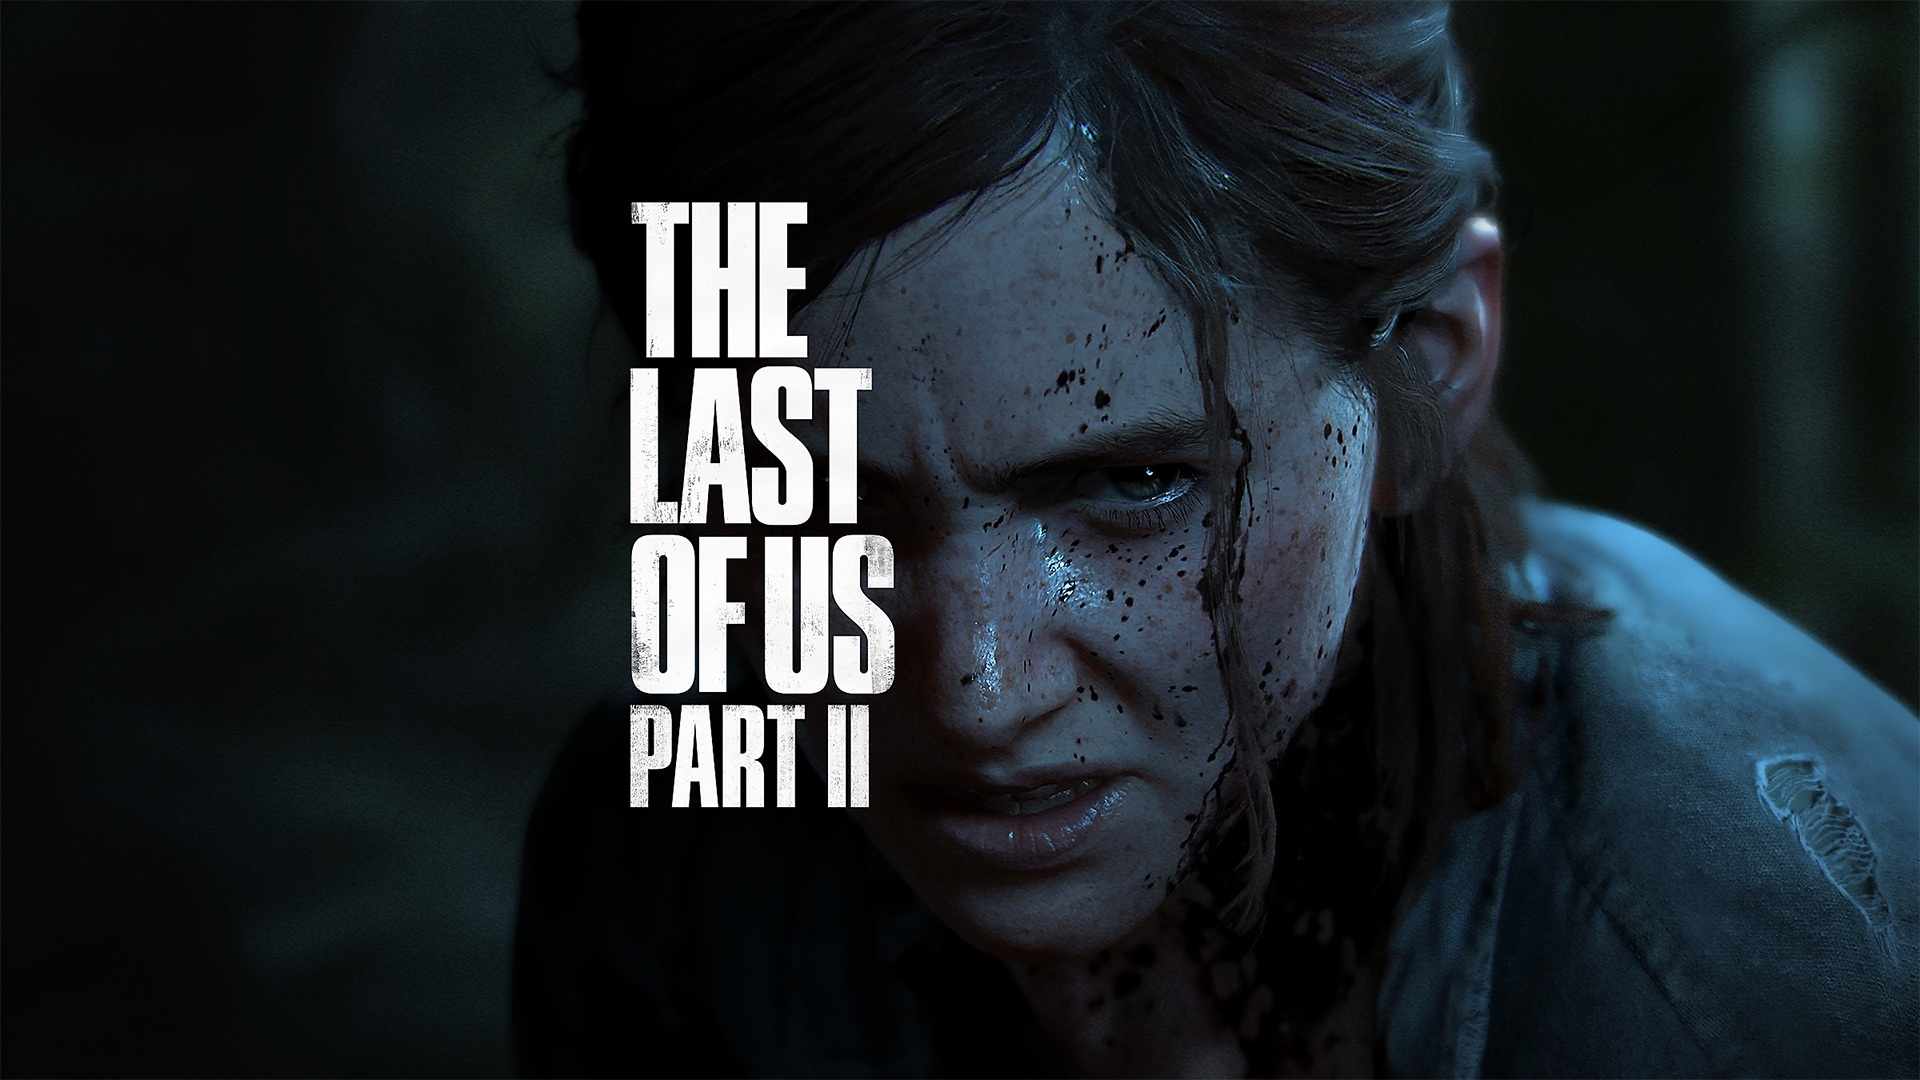 The Last of Us Part II - Great Game Play